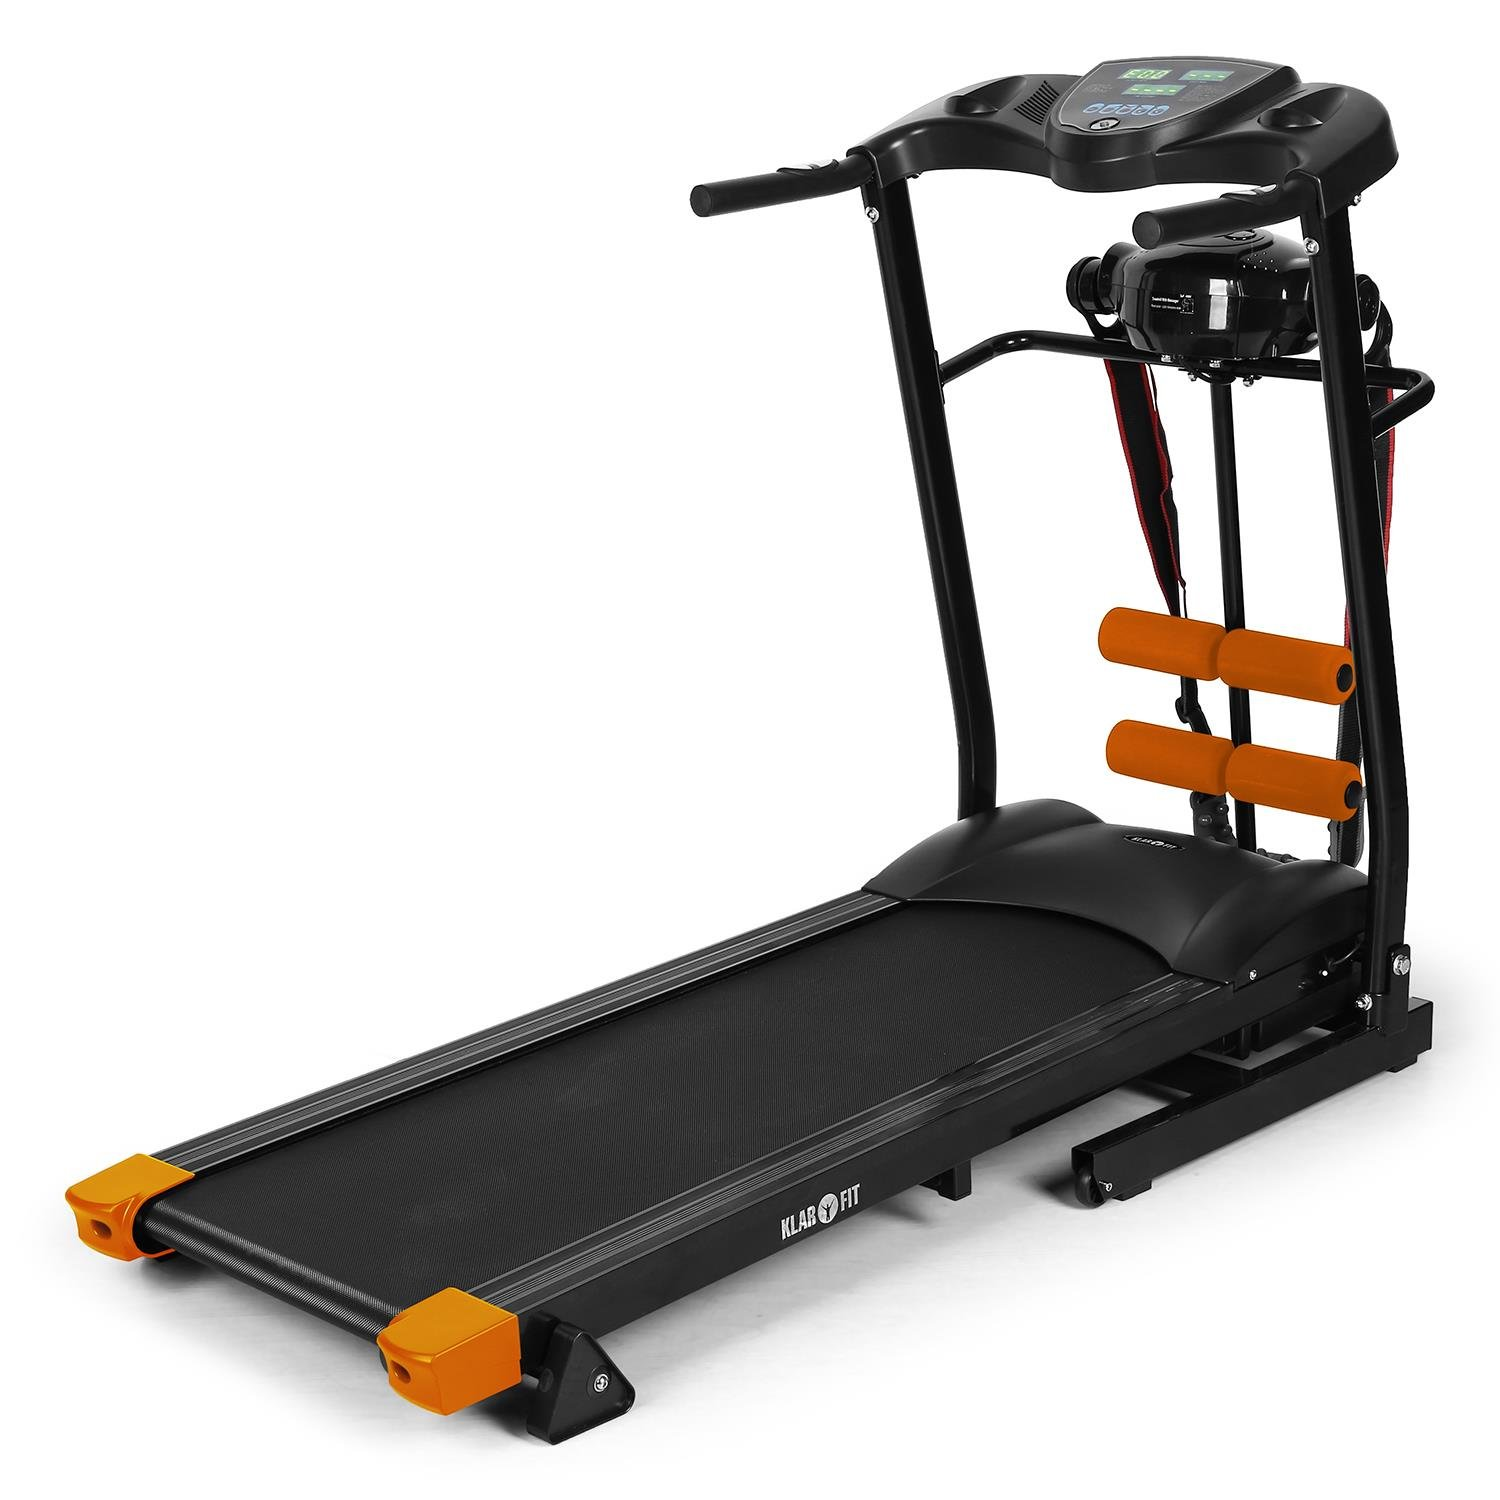 Klarfit Treado Advanced Laufband • Heimtrainer • Hometrainer • Aufstellwinkel 10 ° • Bandmassagegerät • Fußanker • Trainingscomputer • LCD-Display • integri